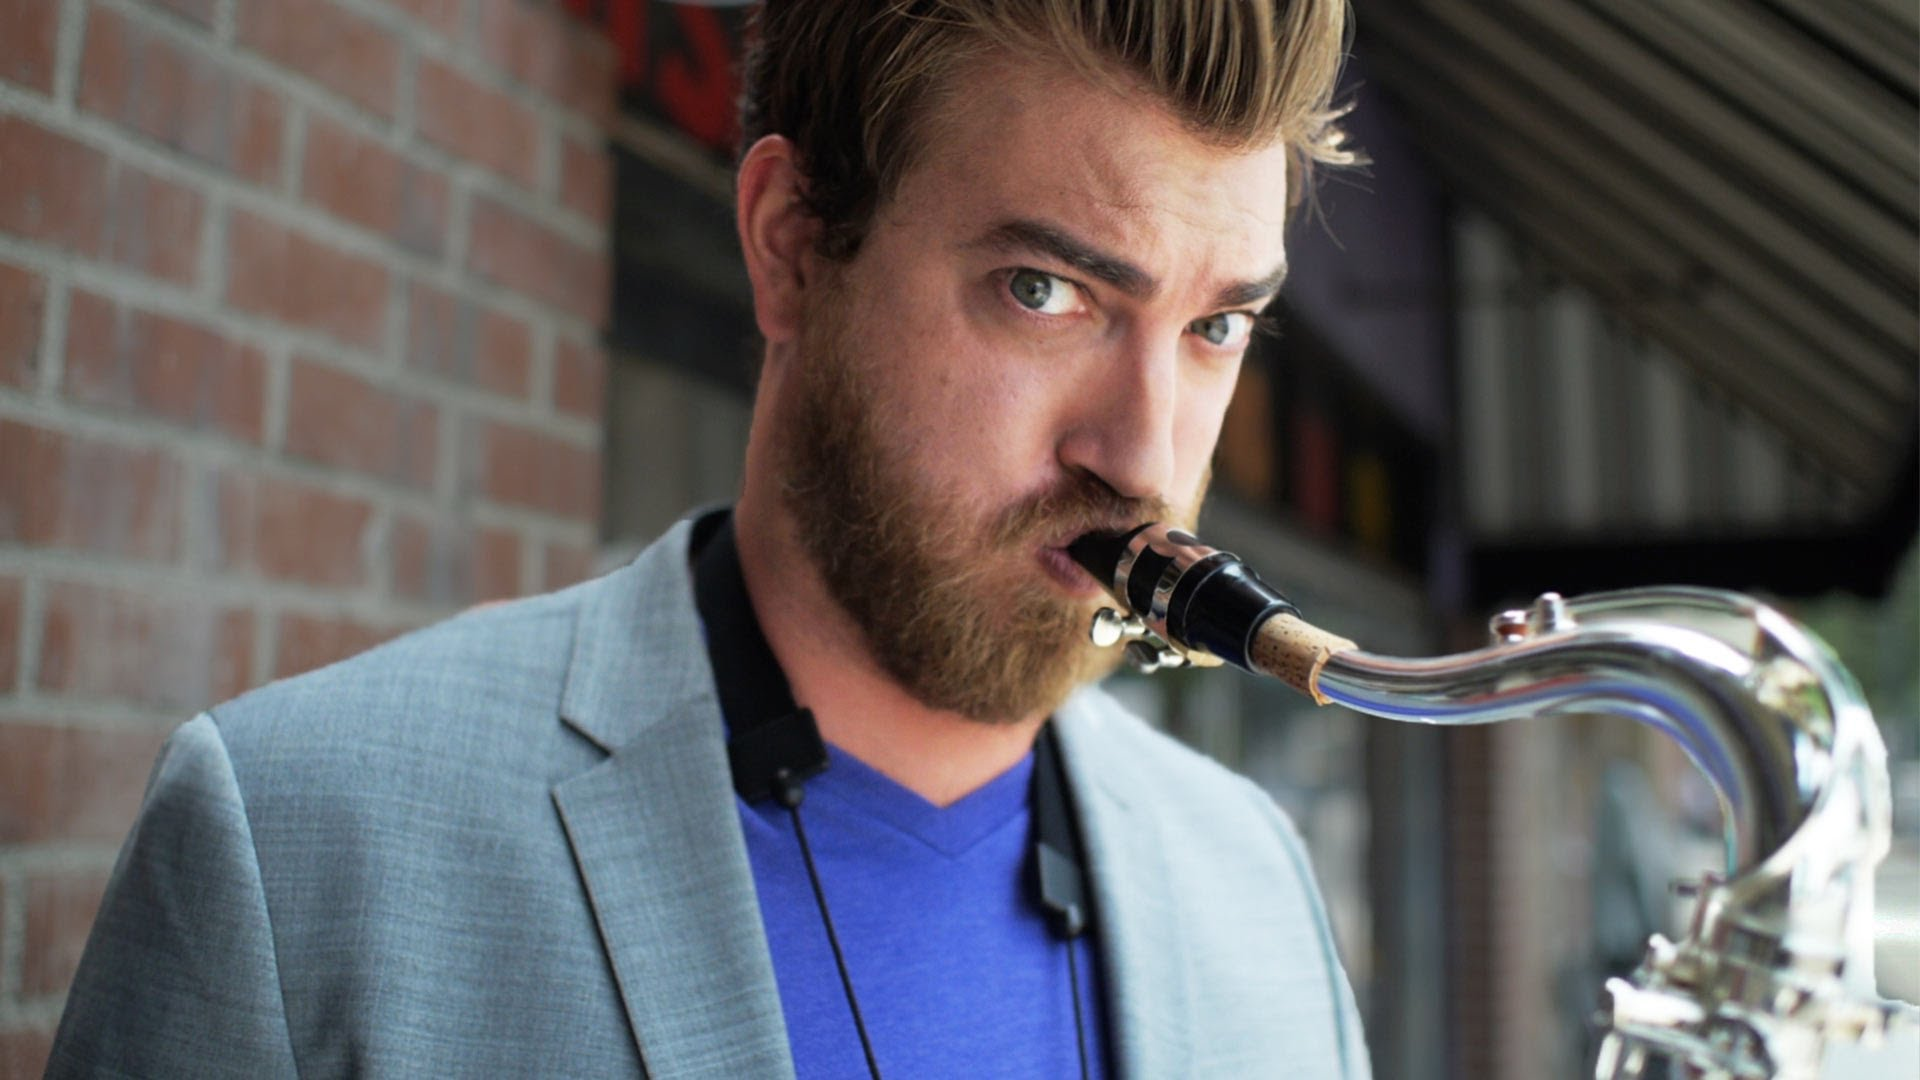 Rhett wished everyone a great day: